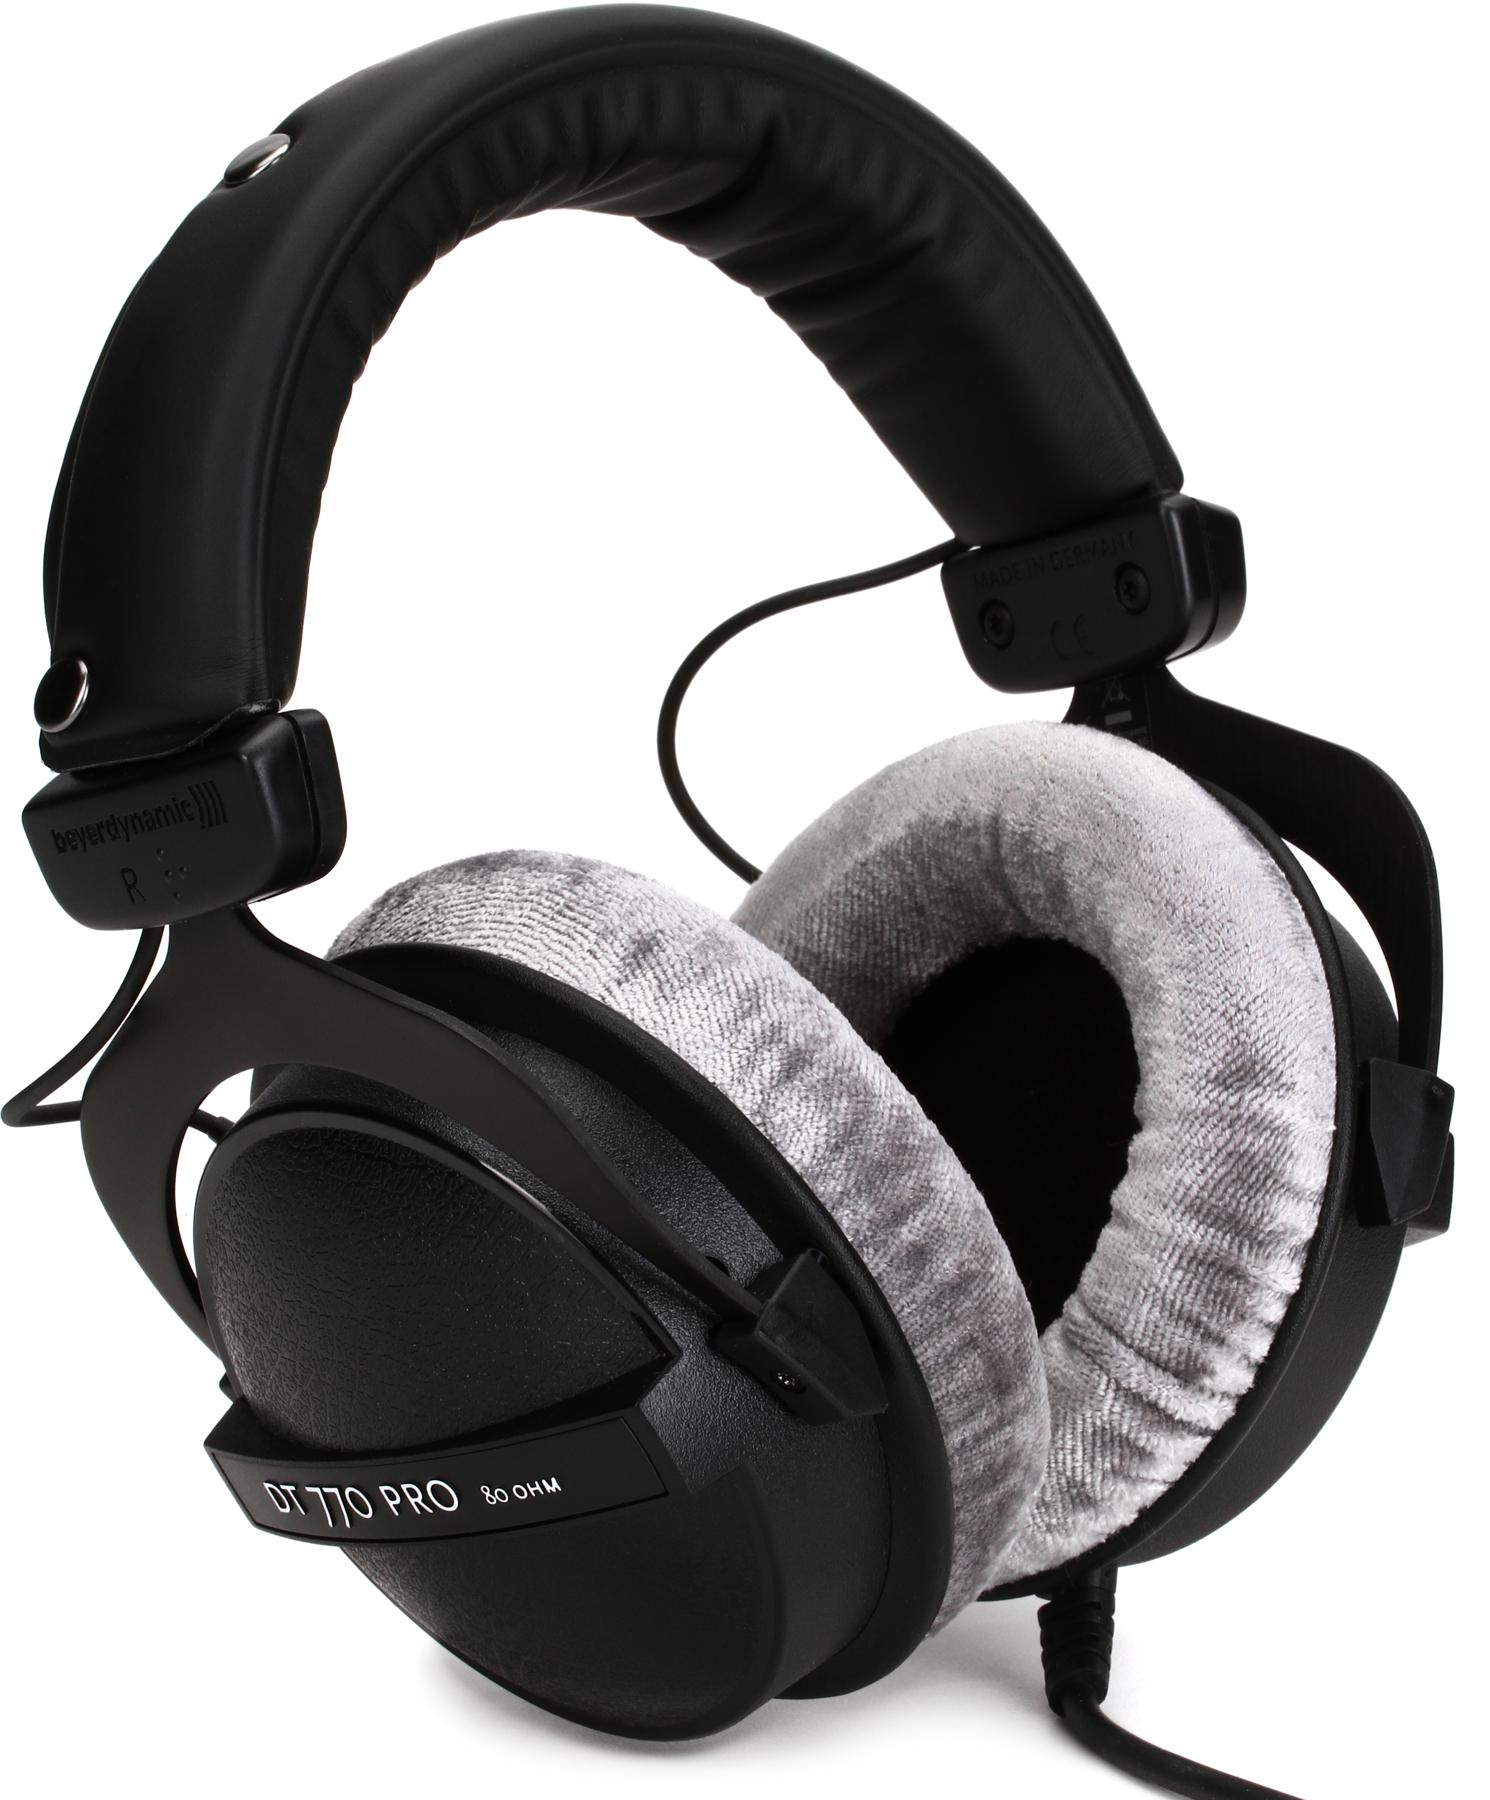 3. Beyerdynamic DT 770 PRO - Closed Studio Headphone